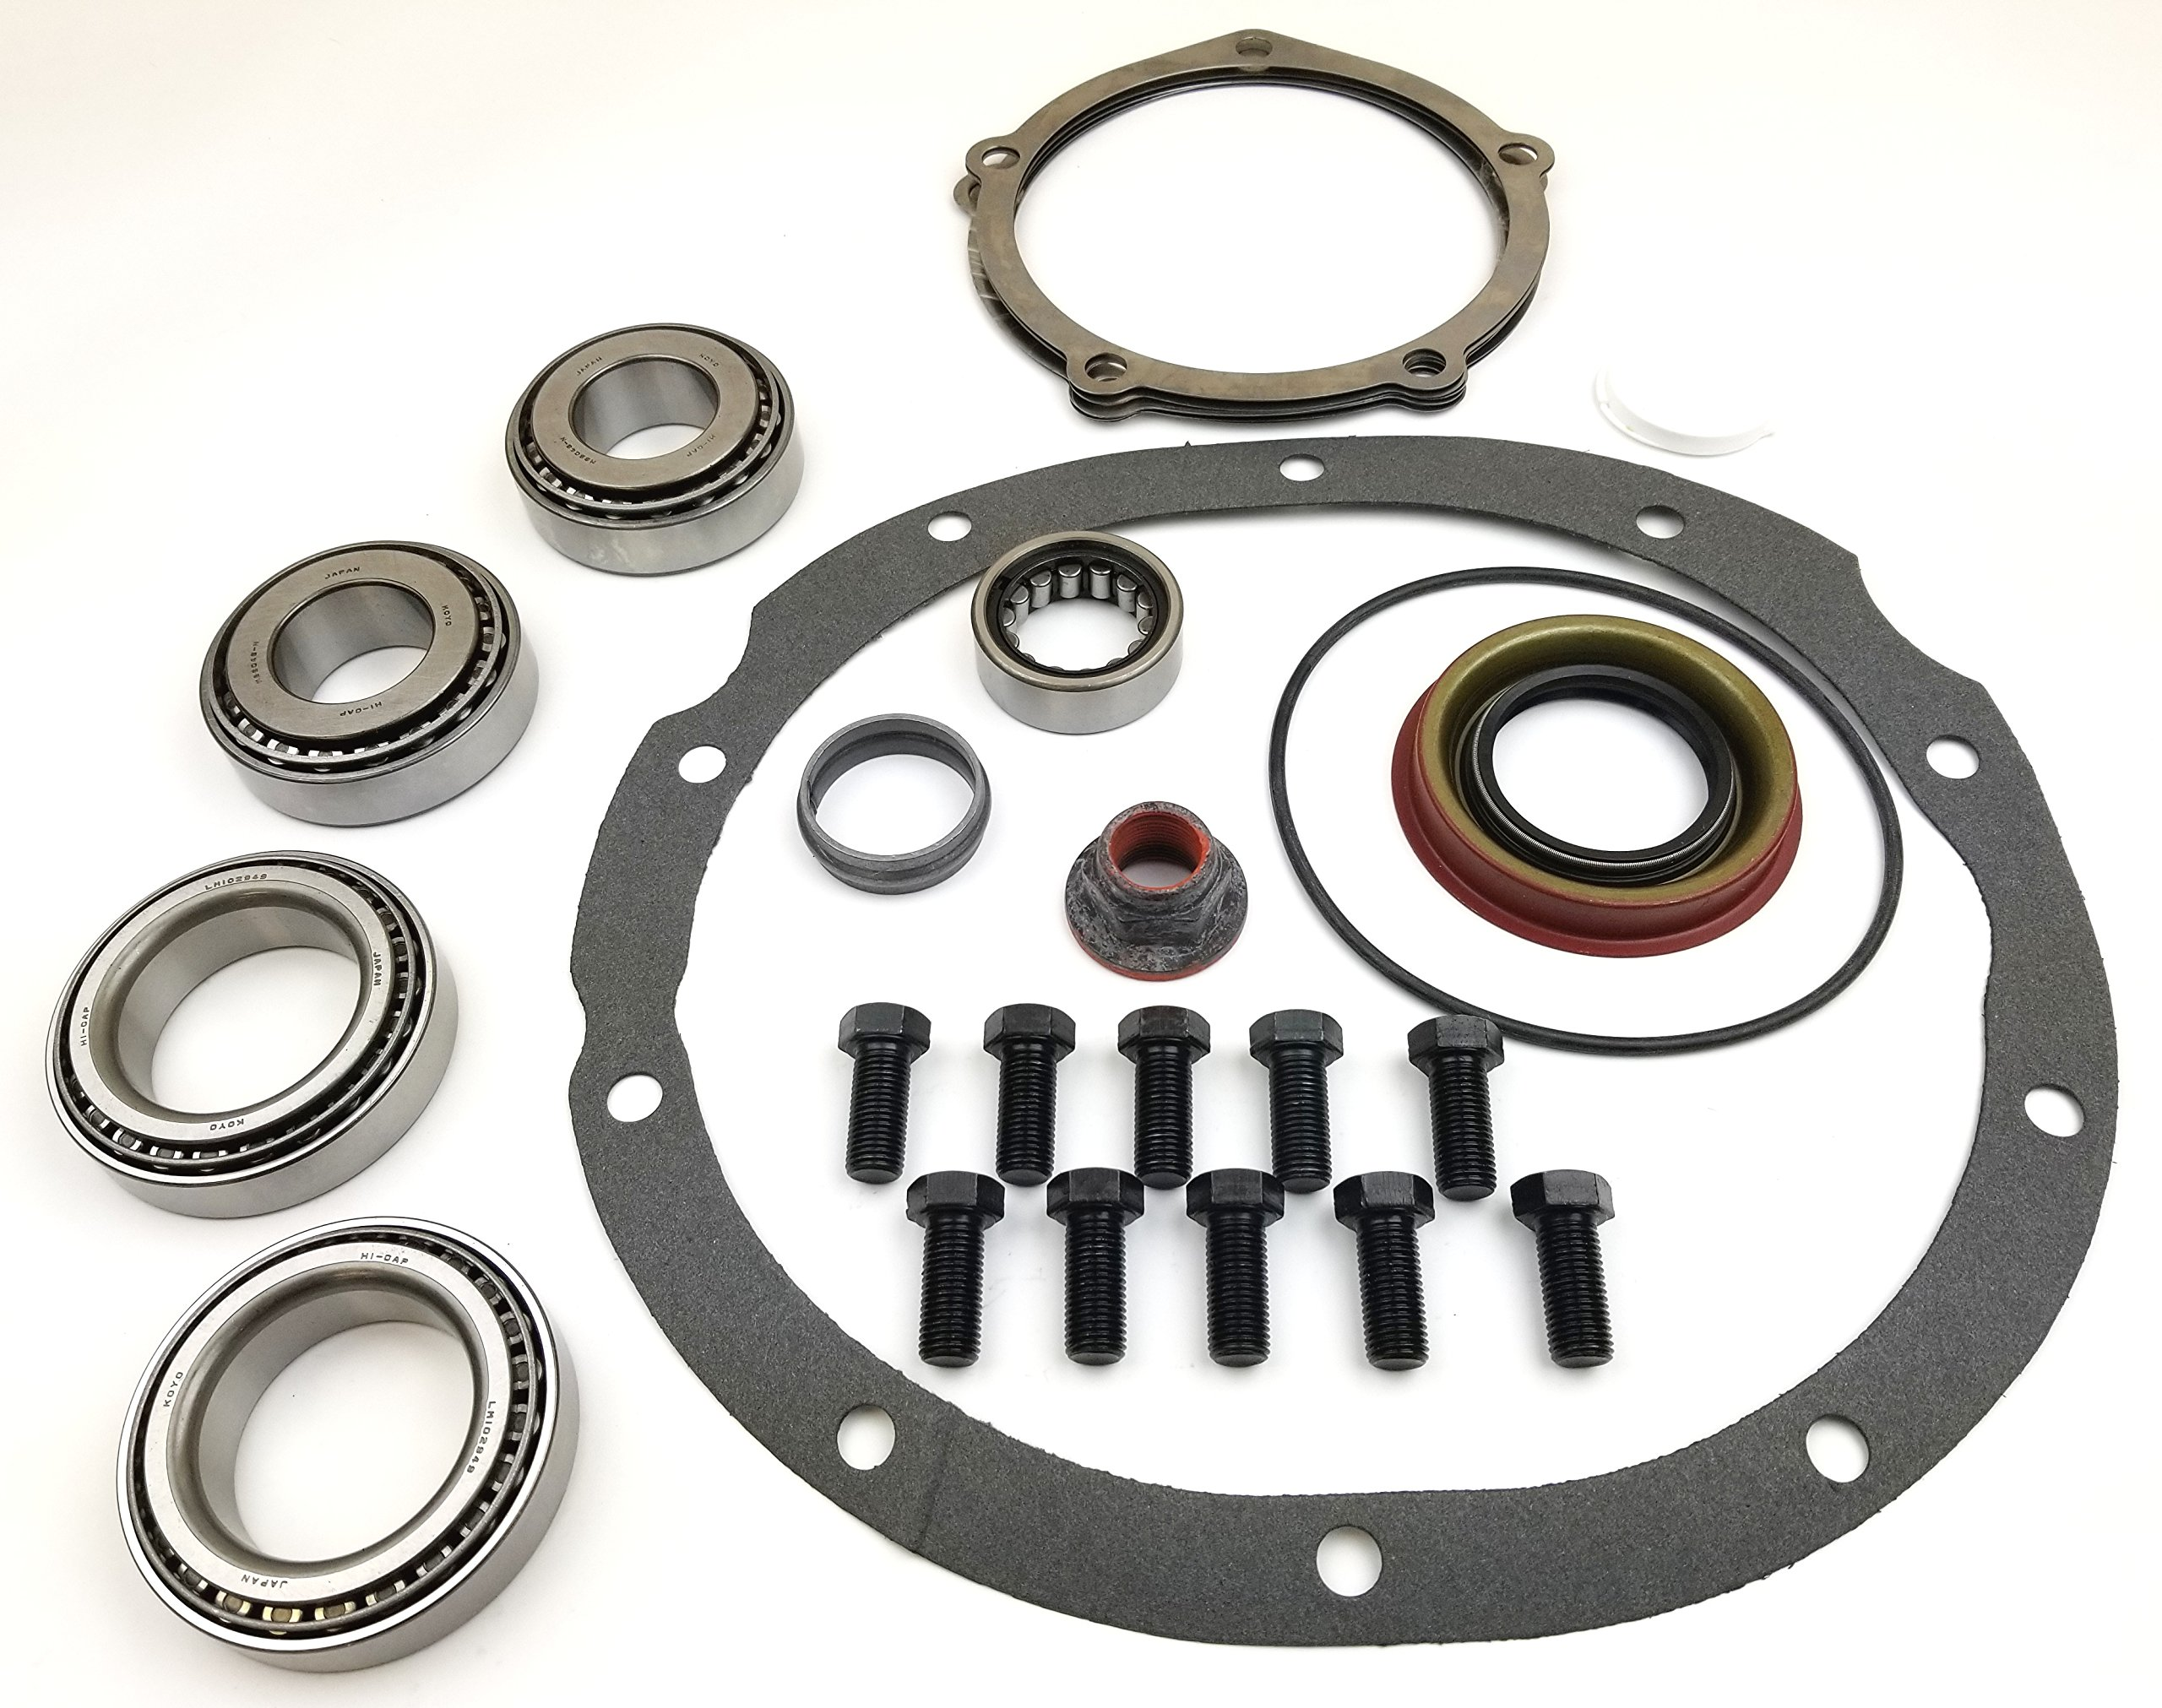 ALL POWERSPORTS DRIVETRAIN 9'' Ford Ring and Pinion Installation Bearing Master Rebuild Kit (TIMKEN) 3.062